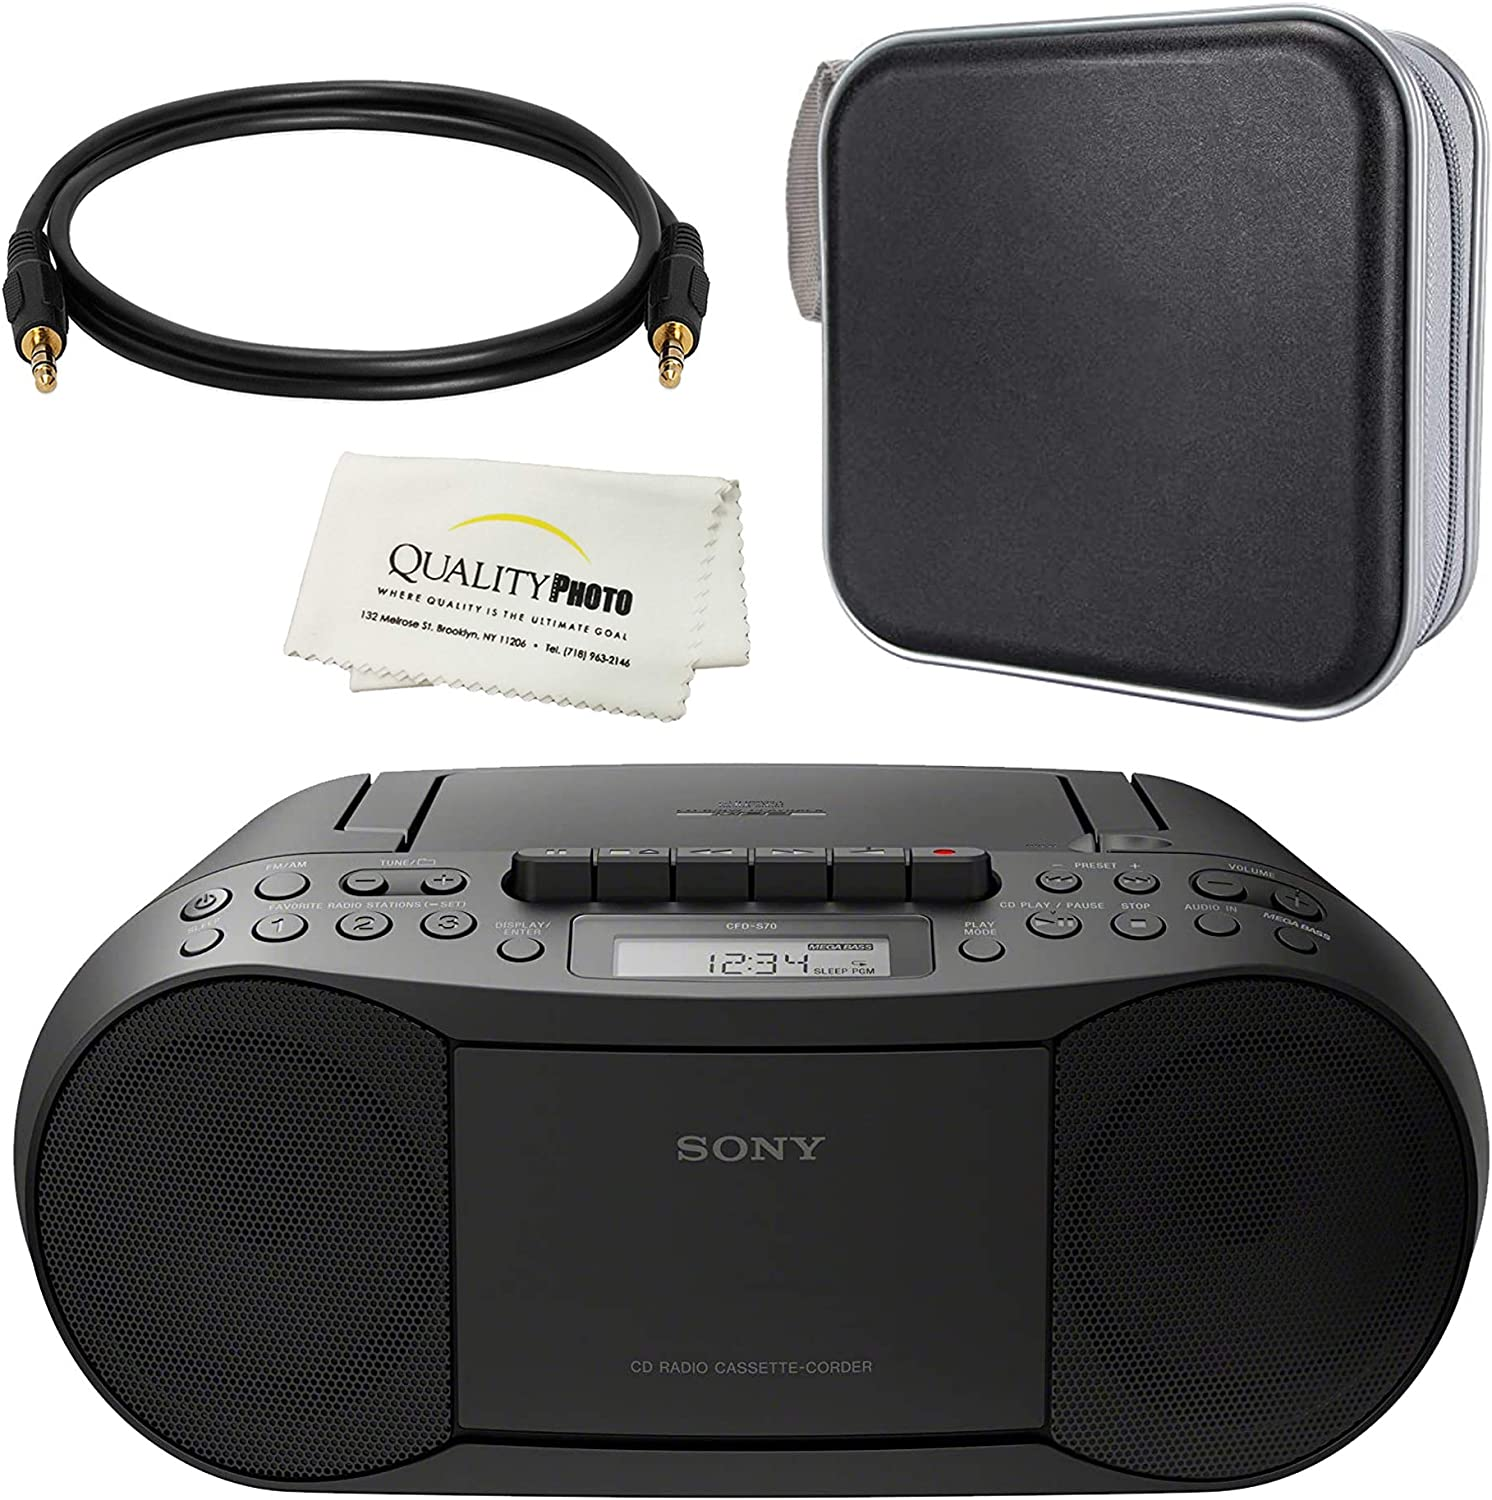 Sony Stereo CD/Cassette Boombox Home Audio Radio, Black with CD/DVD Album, 3ft AUX Wire (CFDS70BLK)